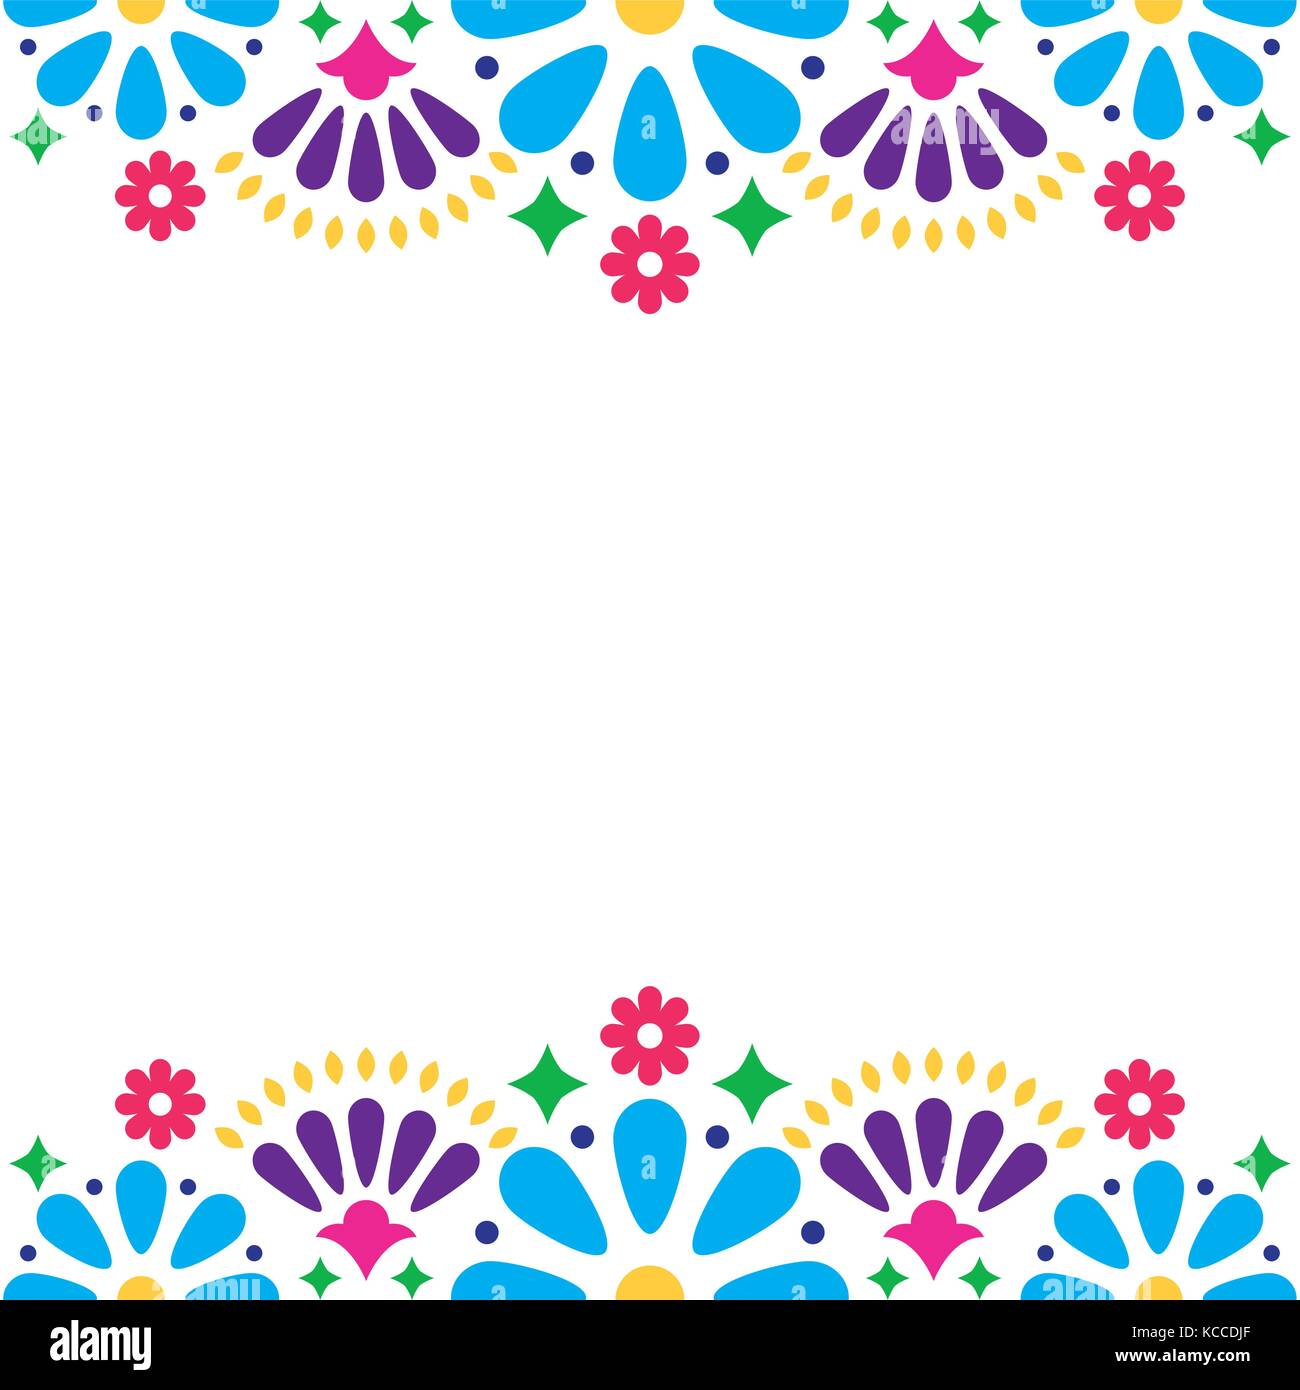 Mexican folk vector wedding or party invitation floral happy stock mexican folk vector wedding or party invitation floral happy greeting card colorful design with flowers and abstract shapes stopboris Choice Image